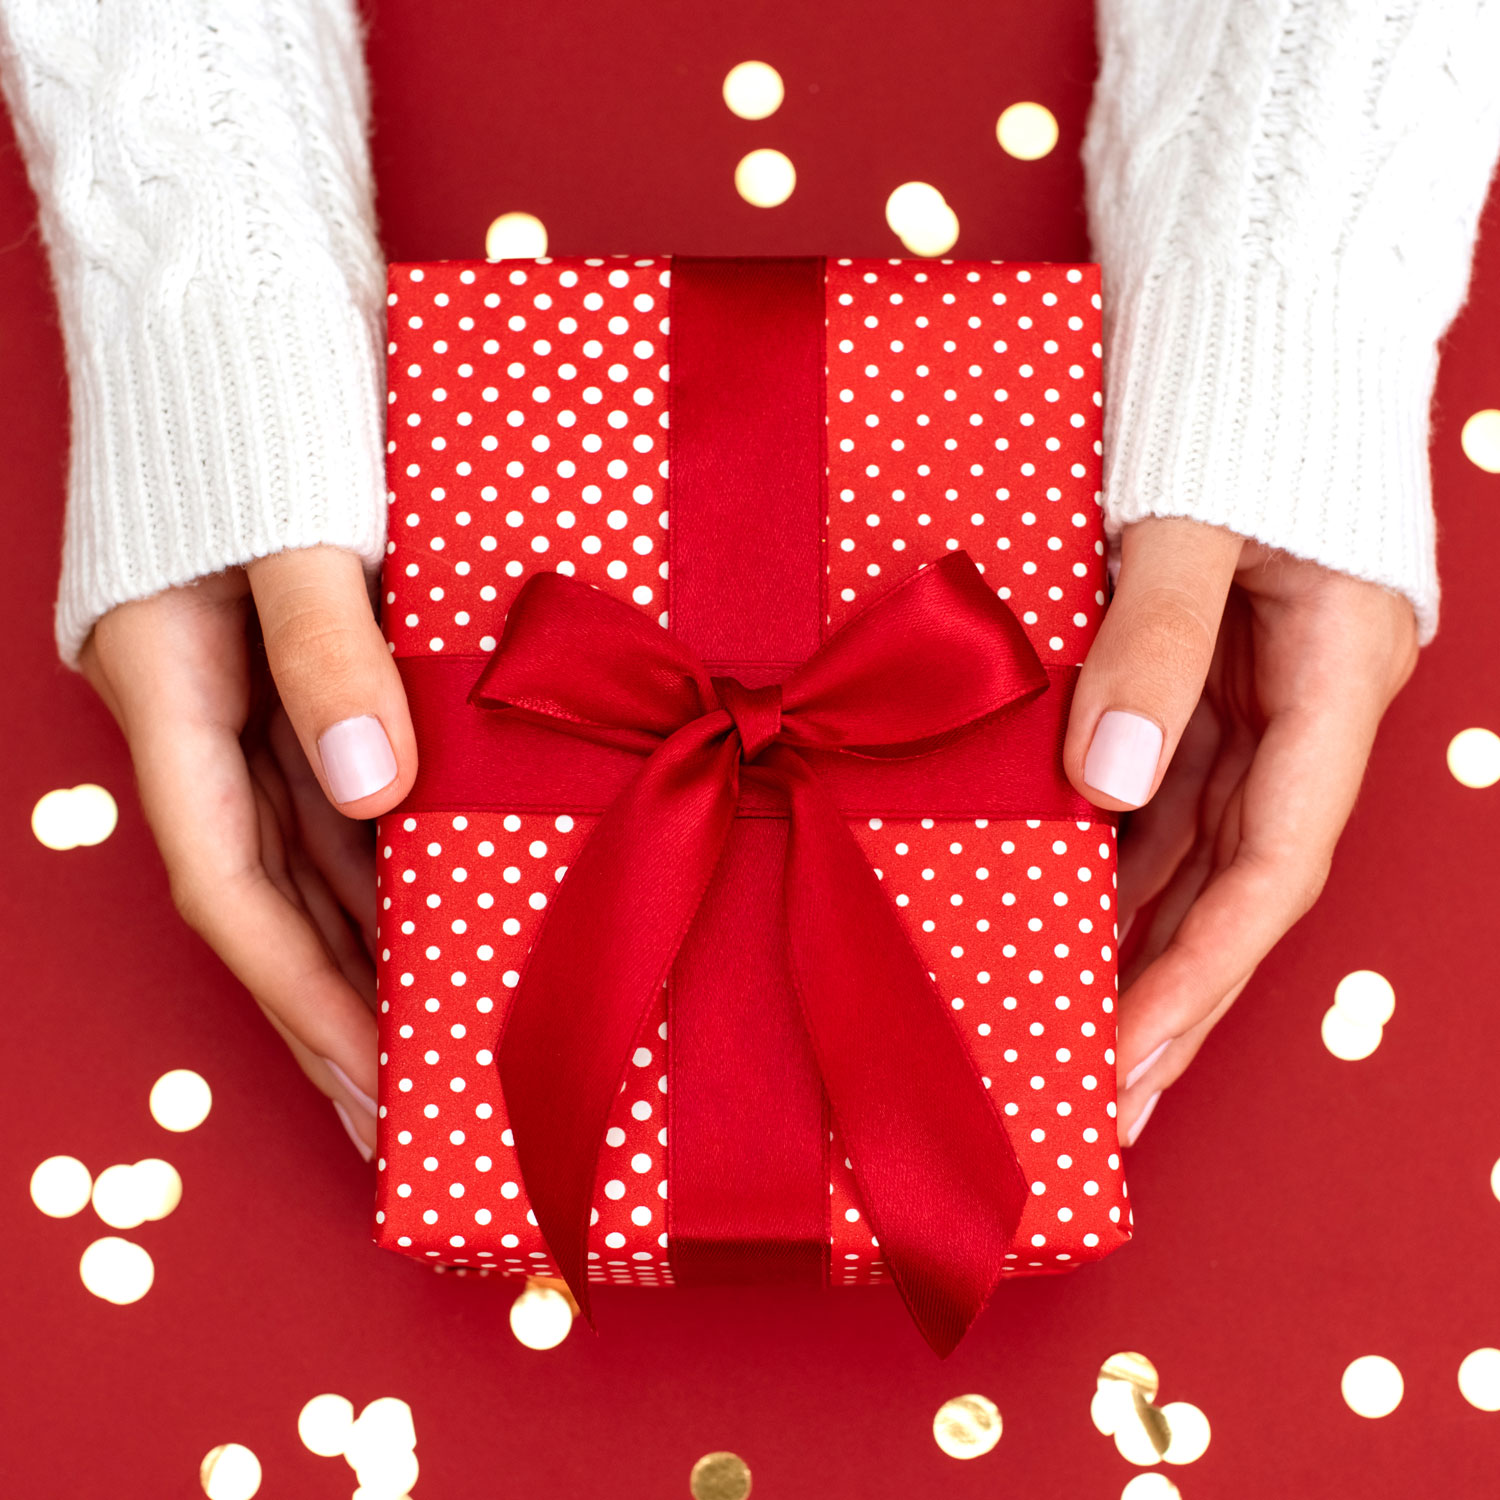 The Gift I'm Giving Everyone This Year Is Under $15—and Totally Customizable